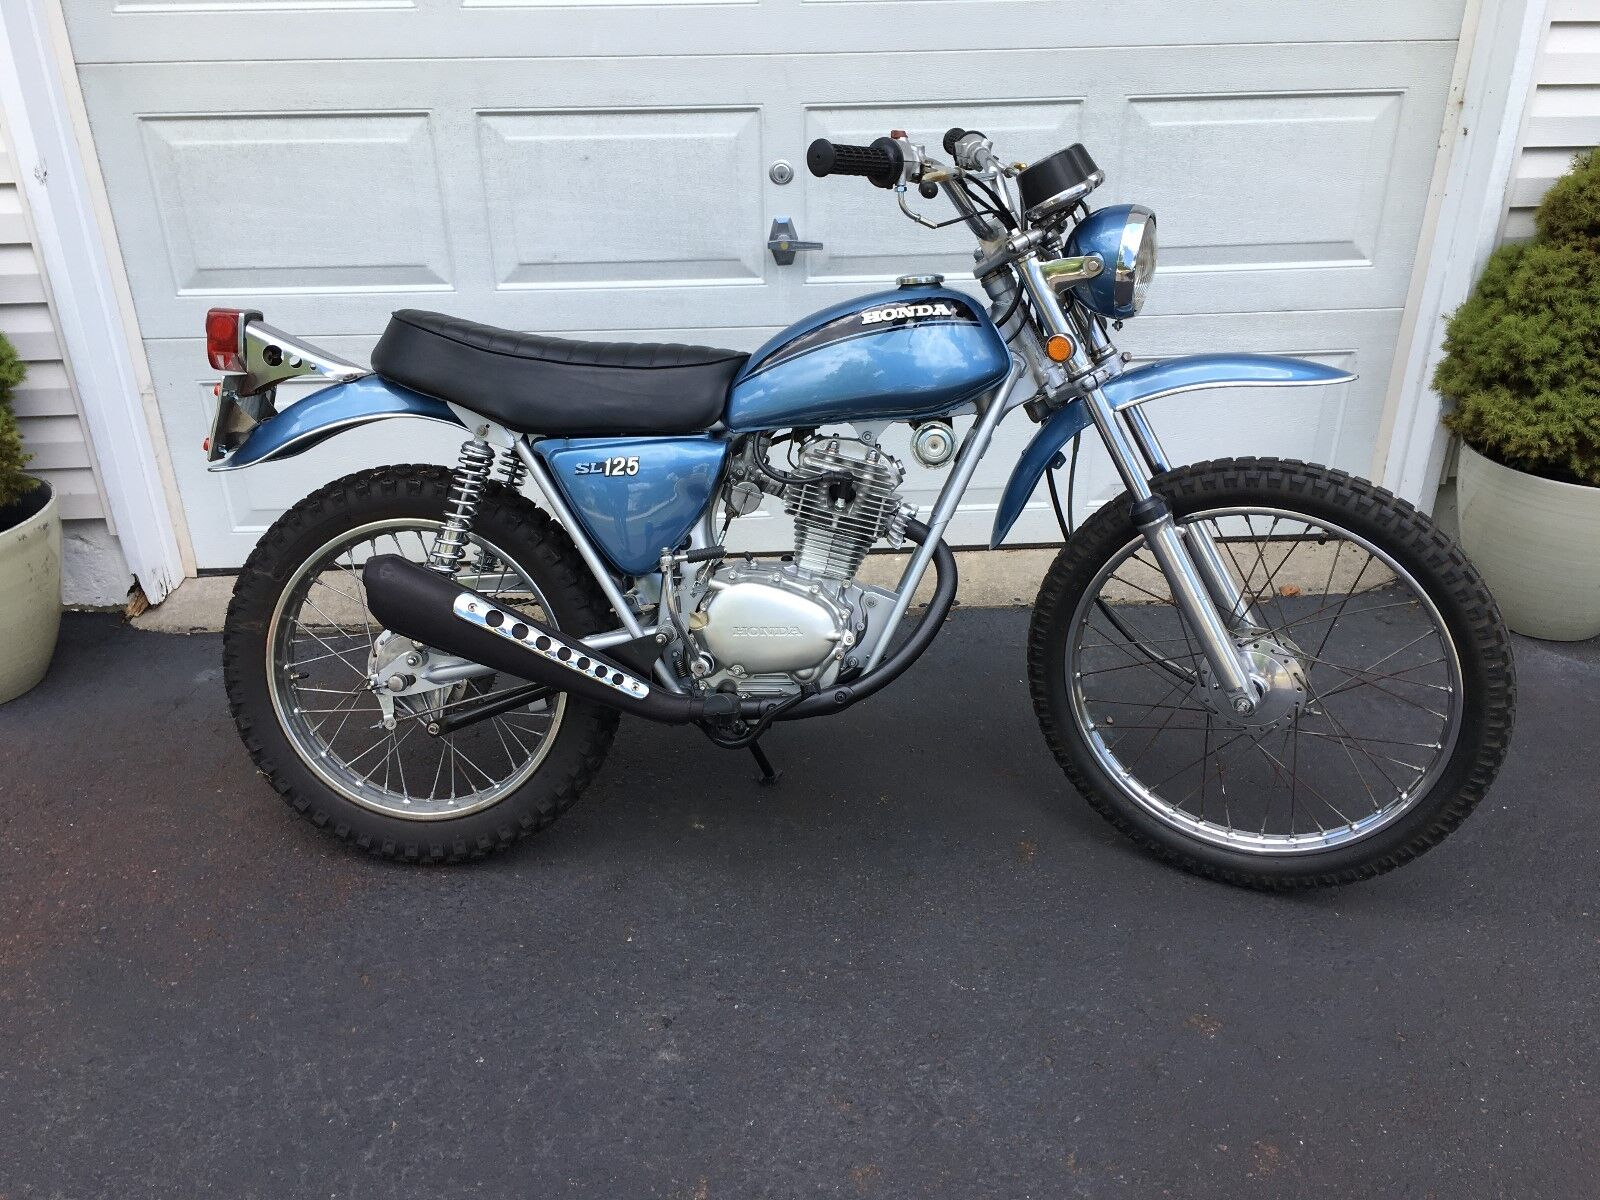 Find used honda motorcycles for sale in dallas fort worth tx for Honda motorcycle dealer dallas